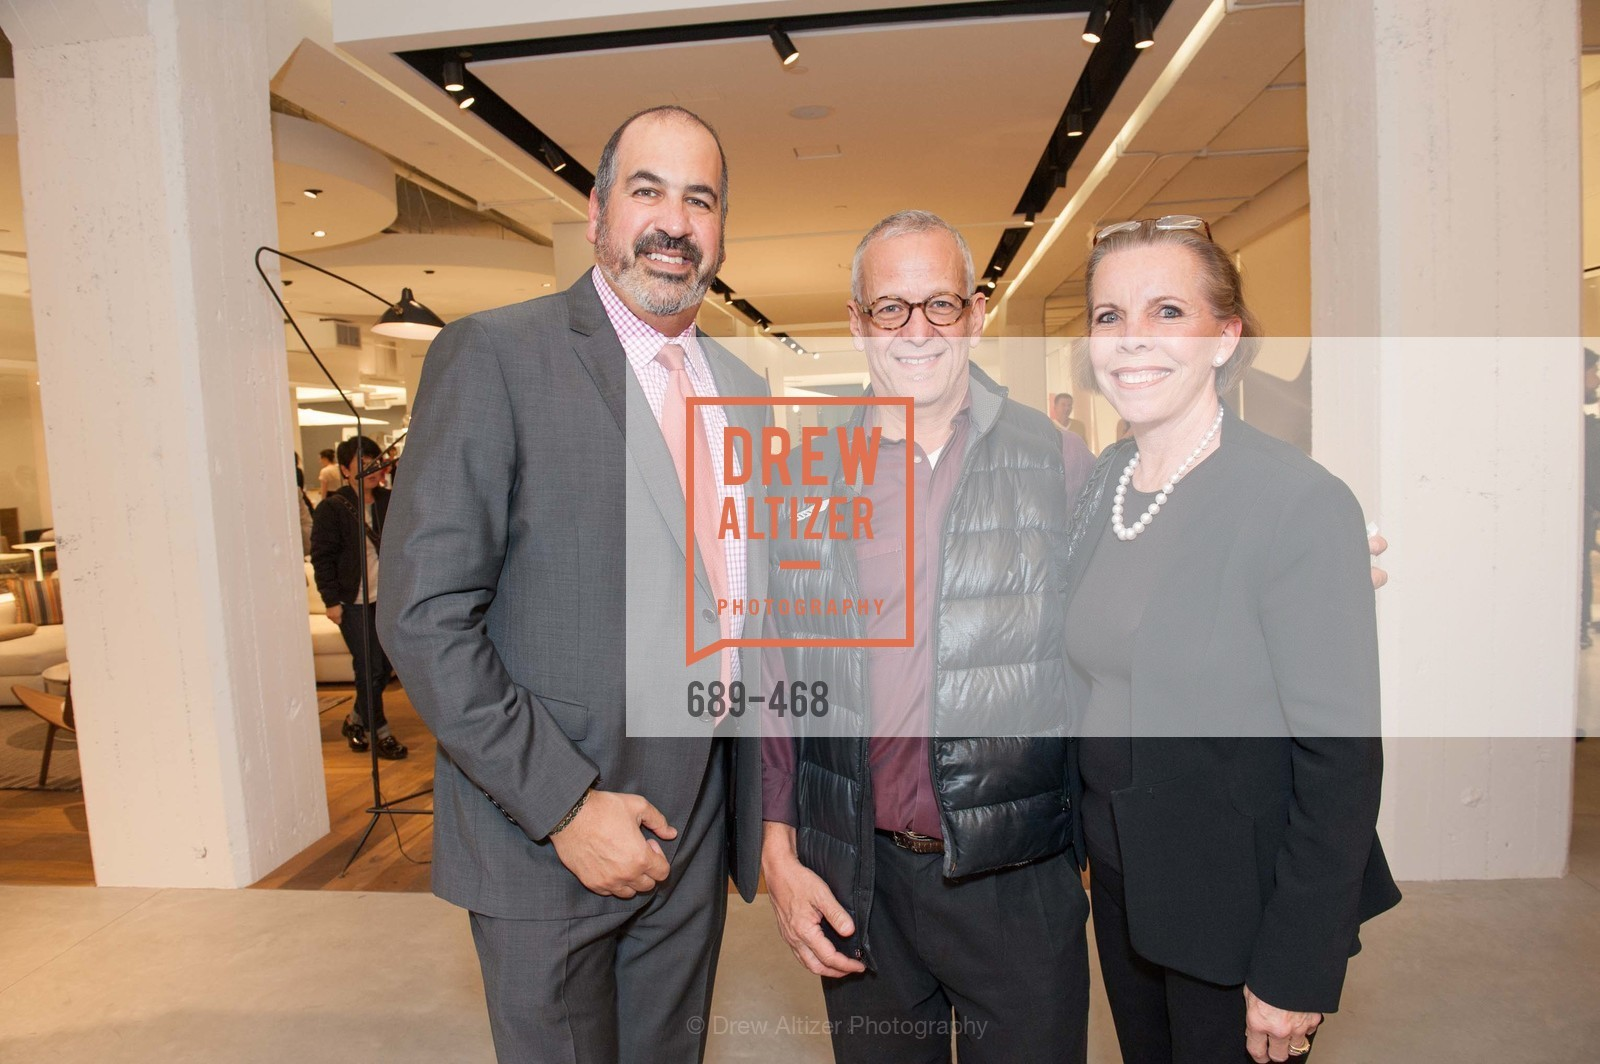 John Edelman, Avner Lapovsky, Pamela Belknap, DESIGN WITHIN REACH Studio Opening, US. US, January 21st, 2014,Drew Altizer, Drew Altizer Photography, full-service agency, private events, San Francisco photographer, photographer california